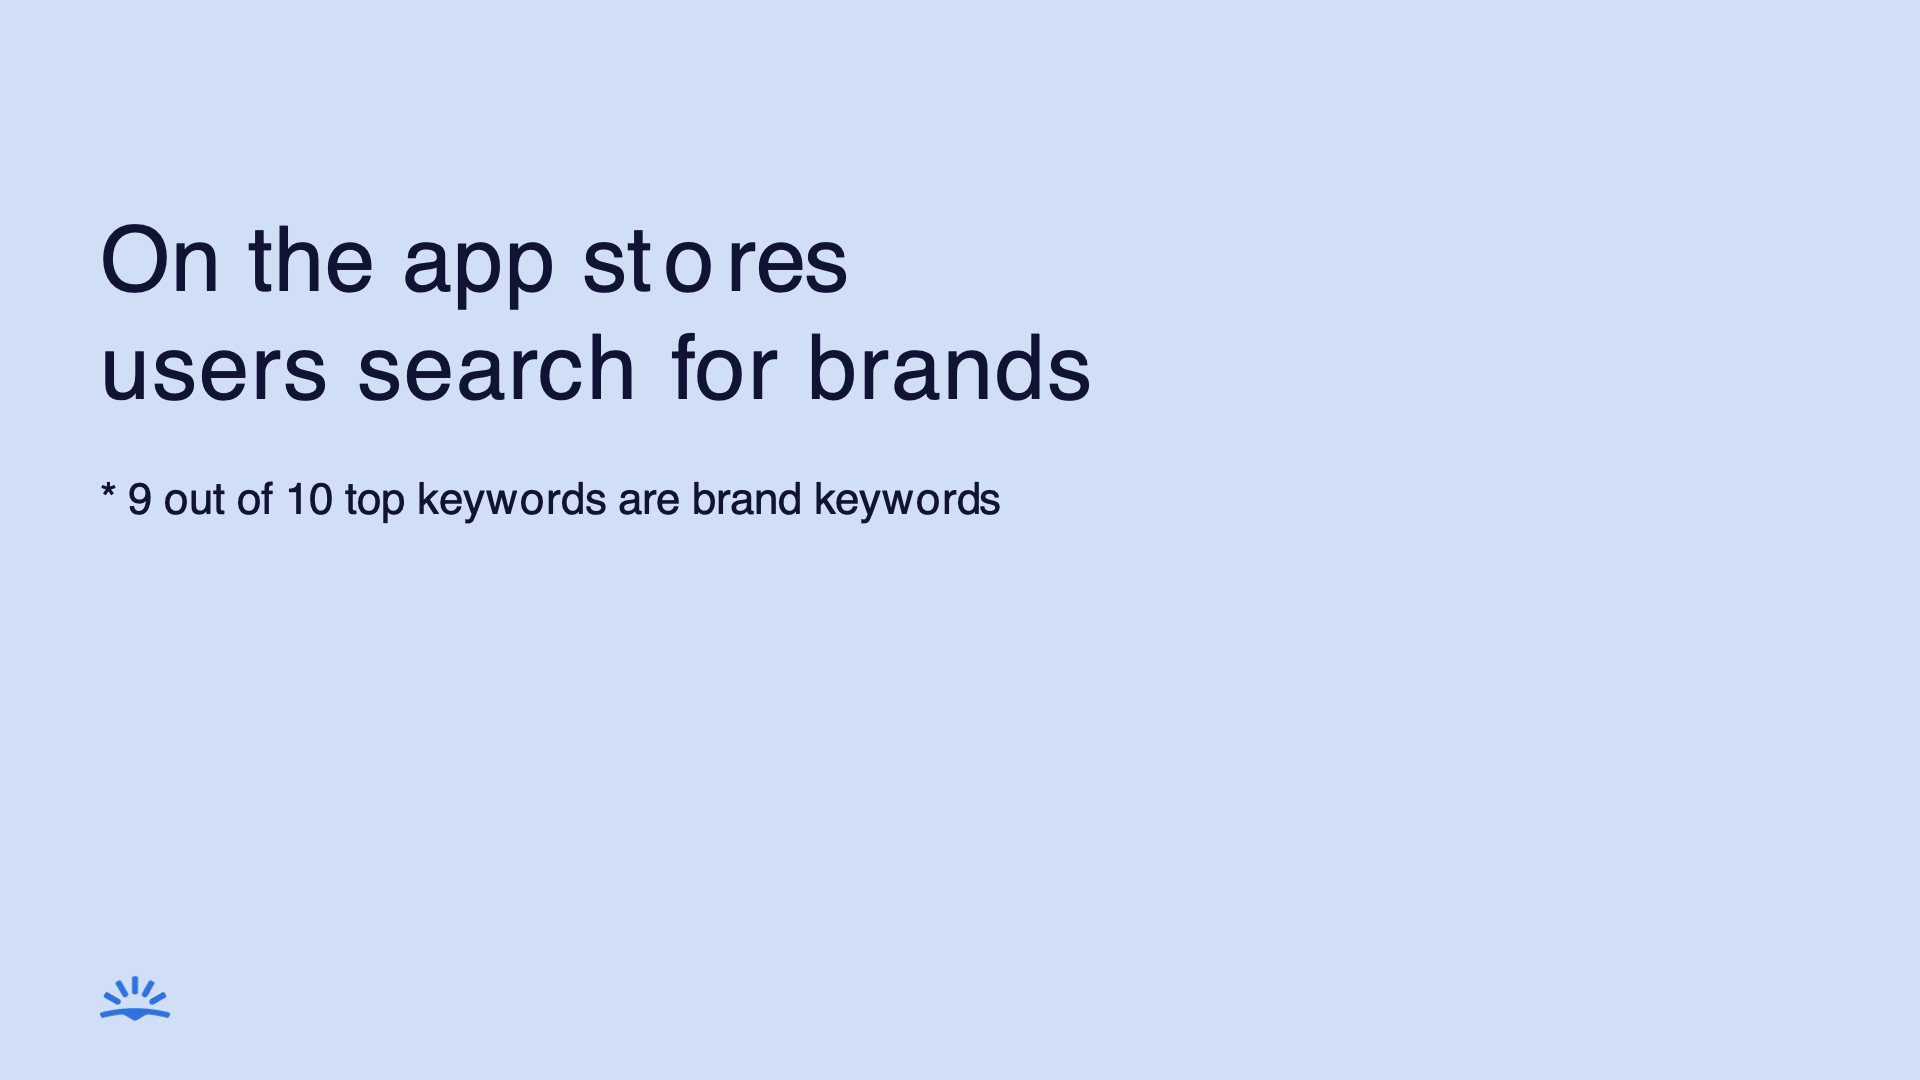 on the app stores users search for brands